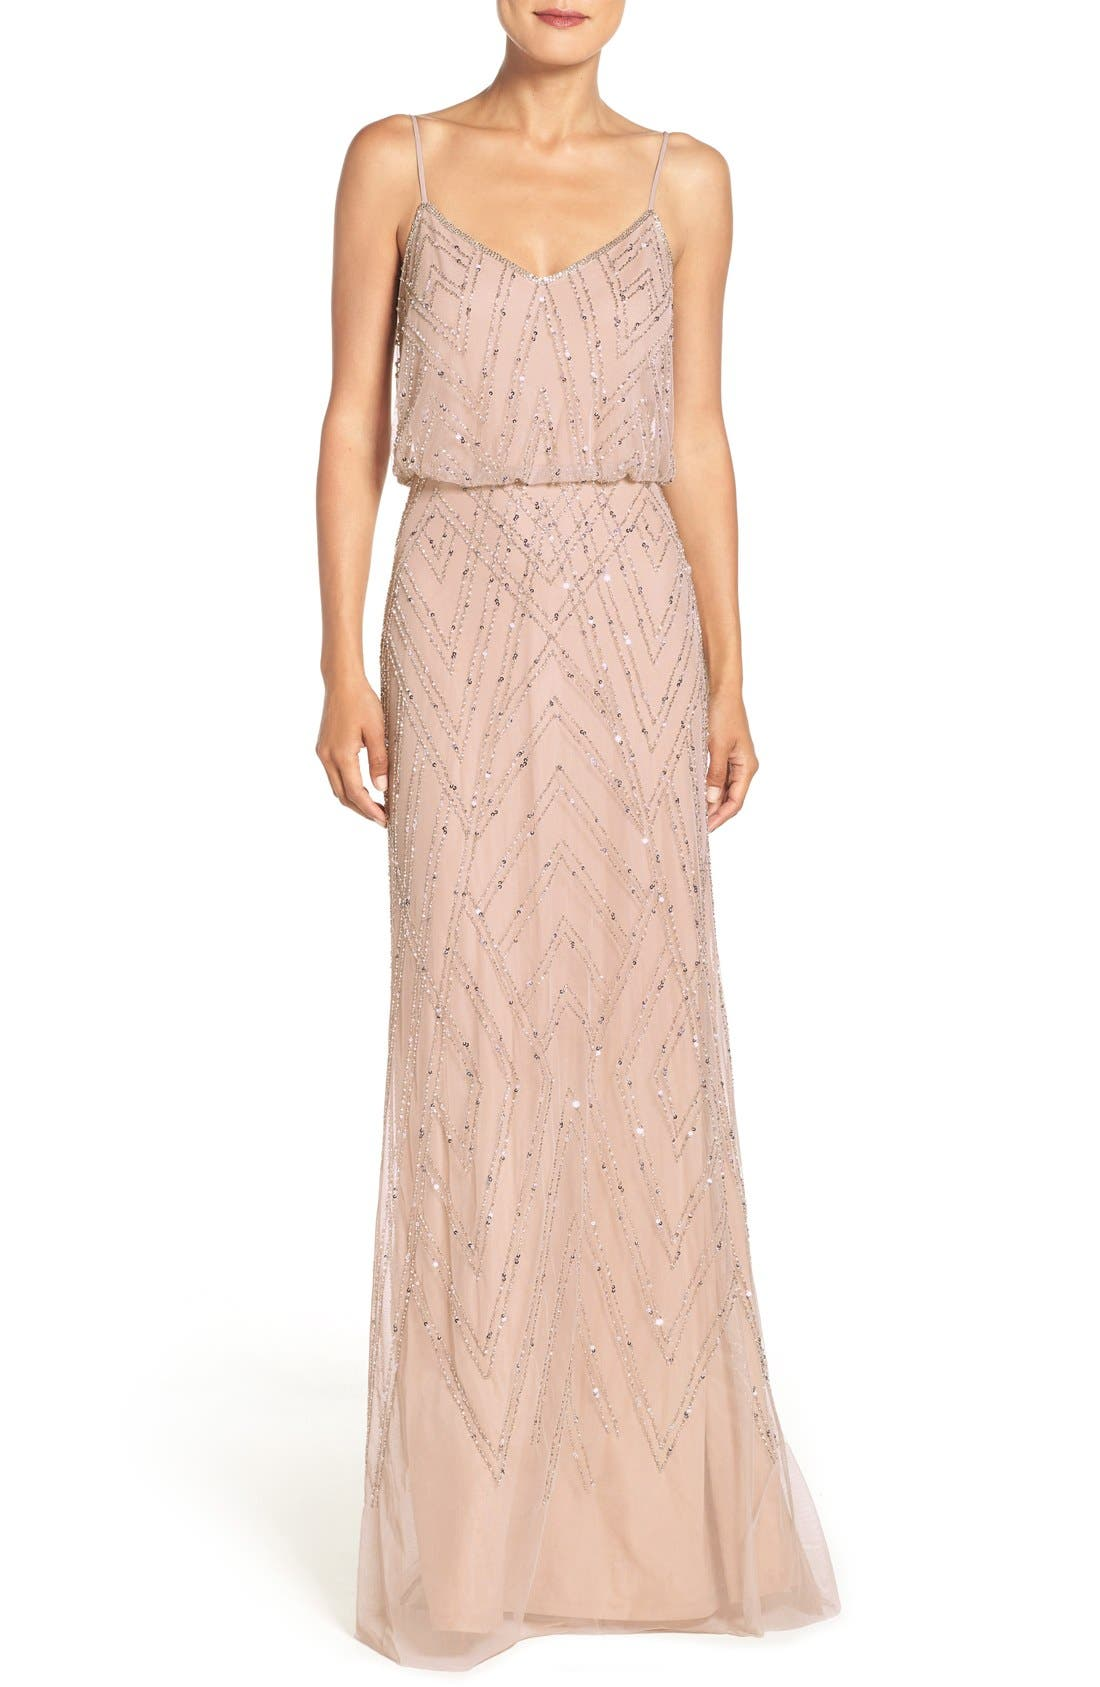 Main Image - Adrianna Papell Embellished Blouson Gown